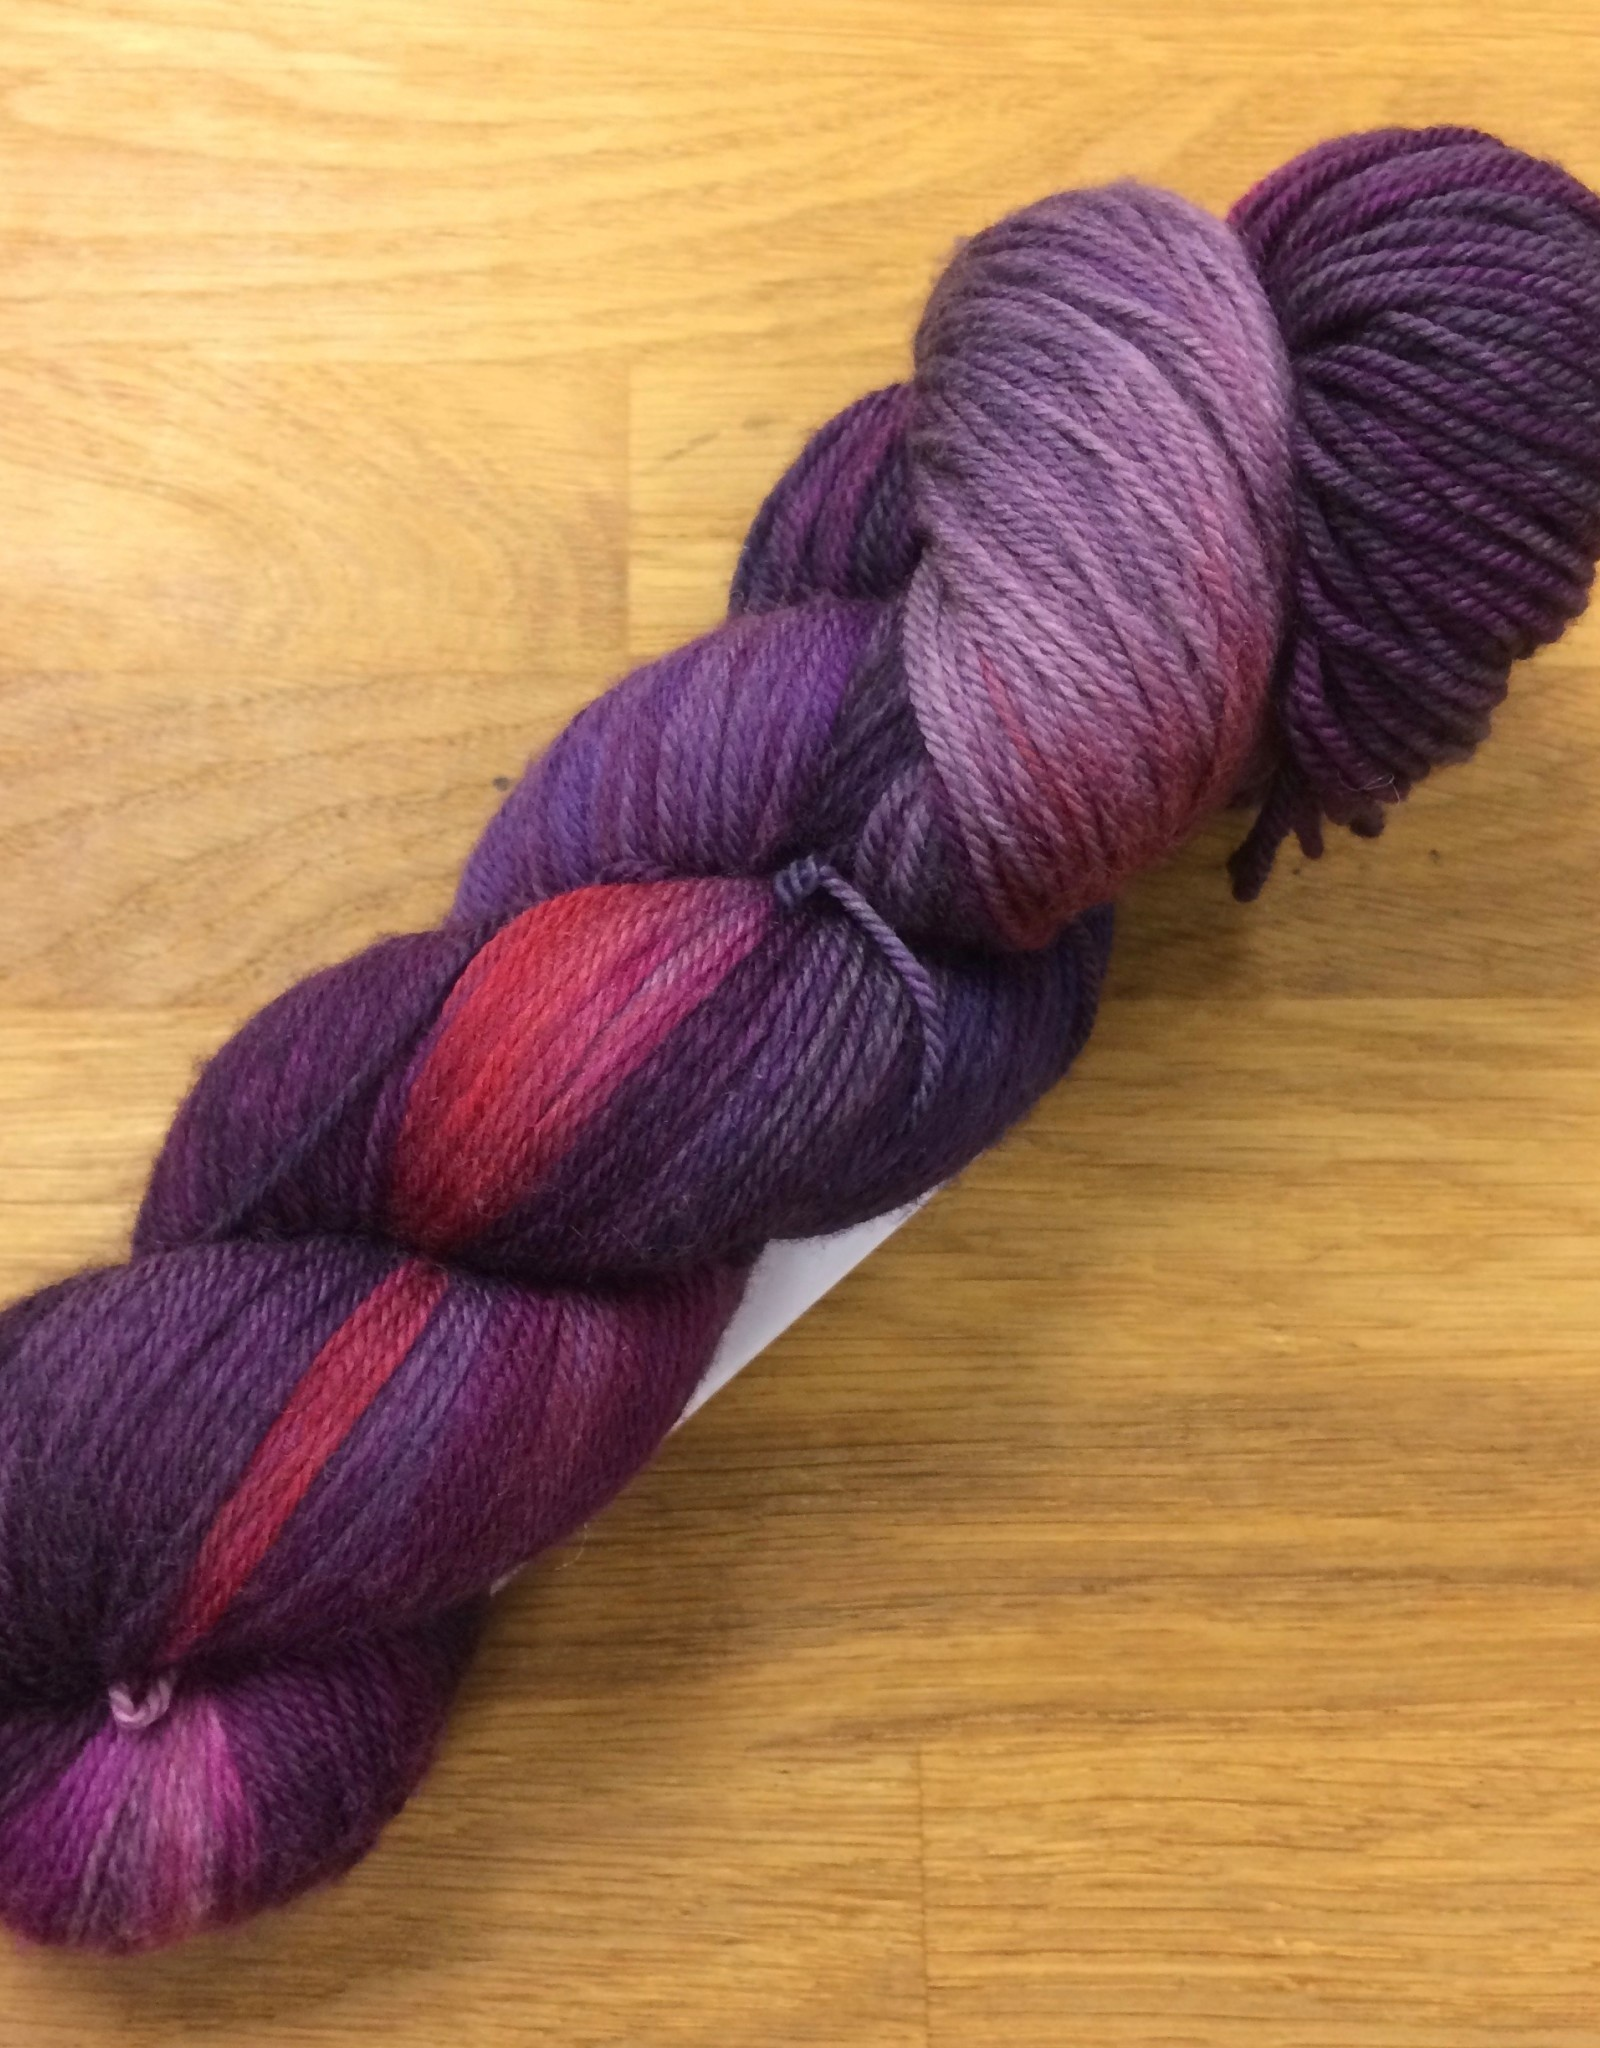 Zen Yarn Garden Magical Dye Pot series by Zen Yarn Garden